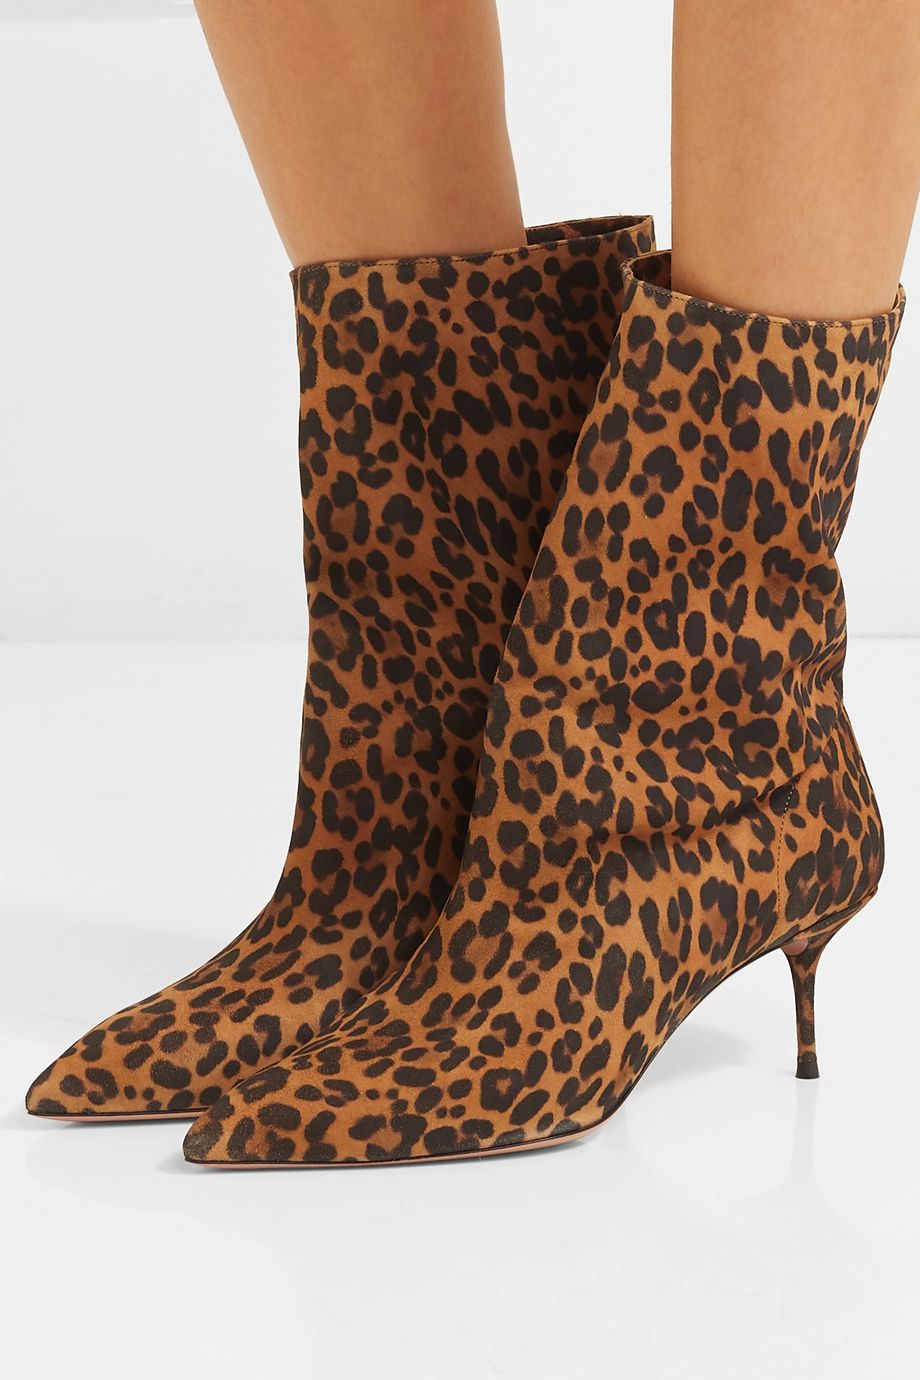 Aquazzura Very Boogie 60 leopard-print suede ankle boots